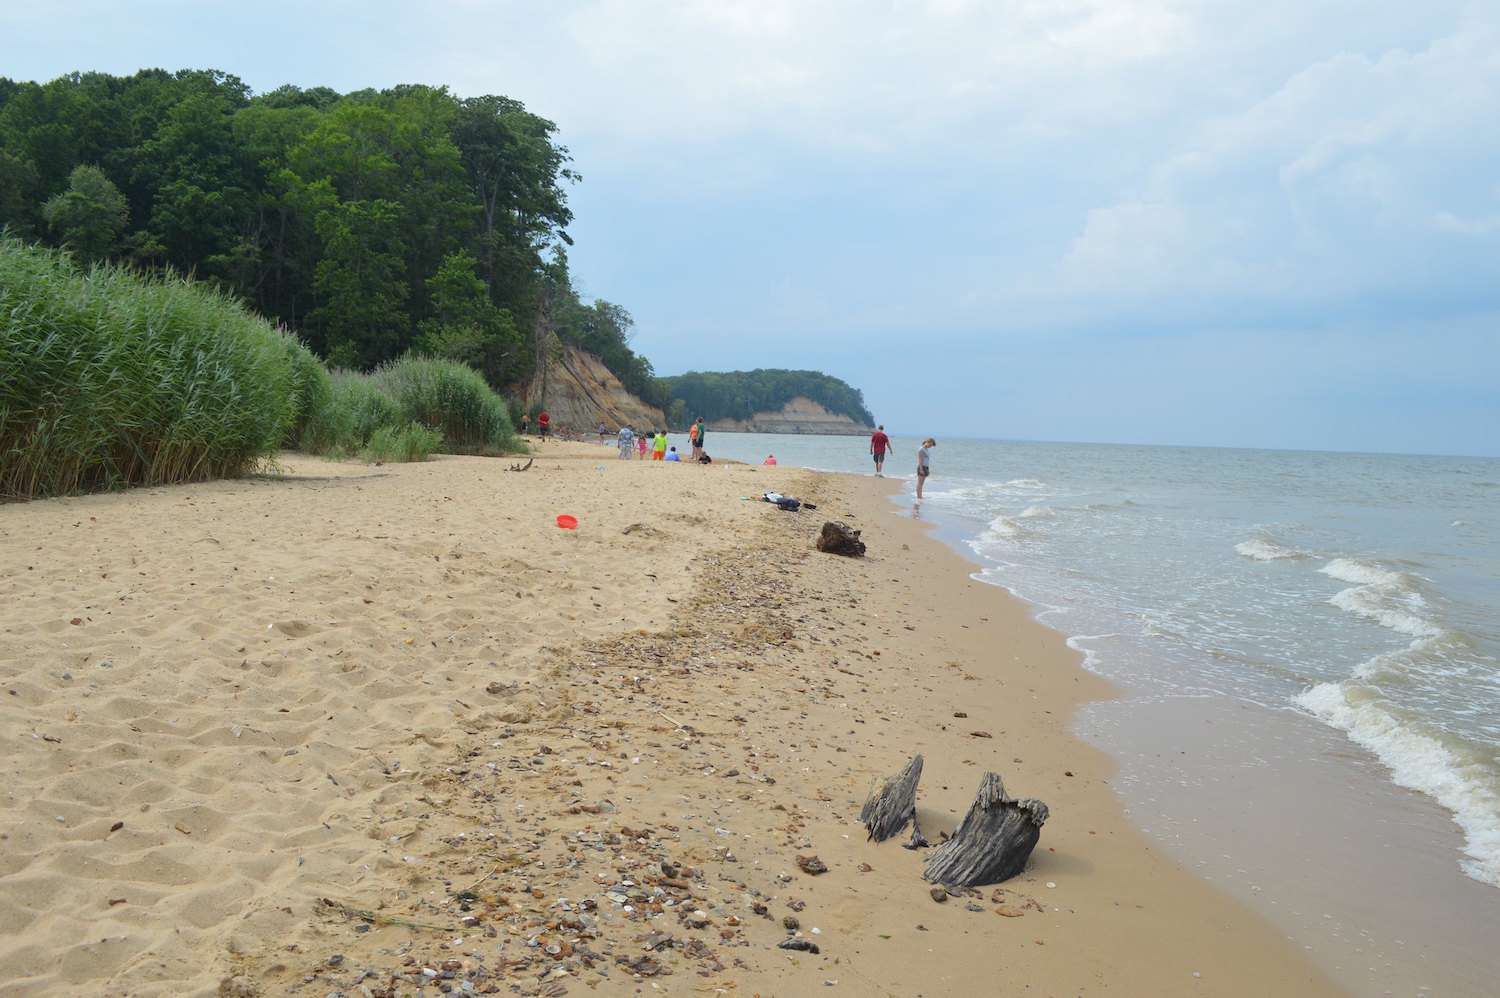 A sandy beach on a partially cloudy day at Calvert Cliffs State Park in Maryland